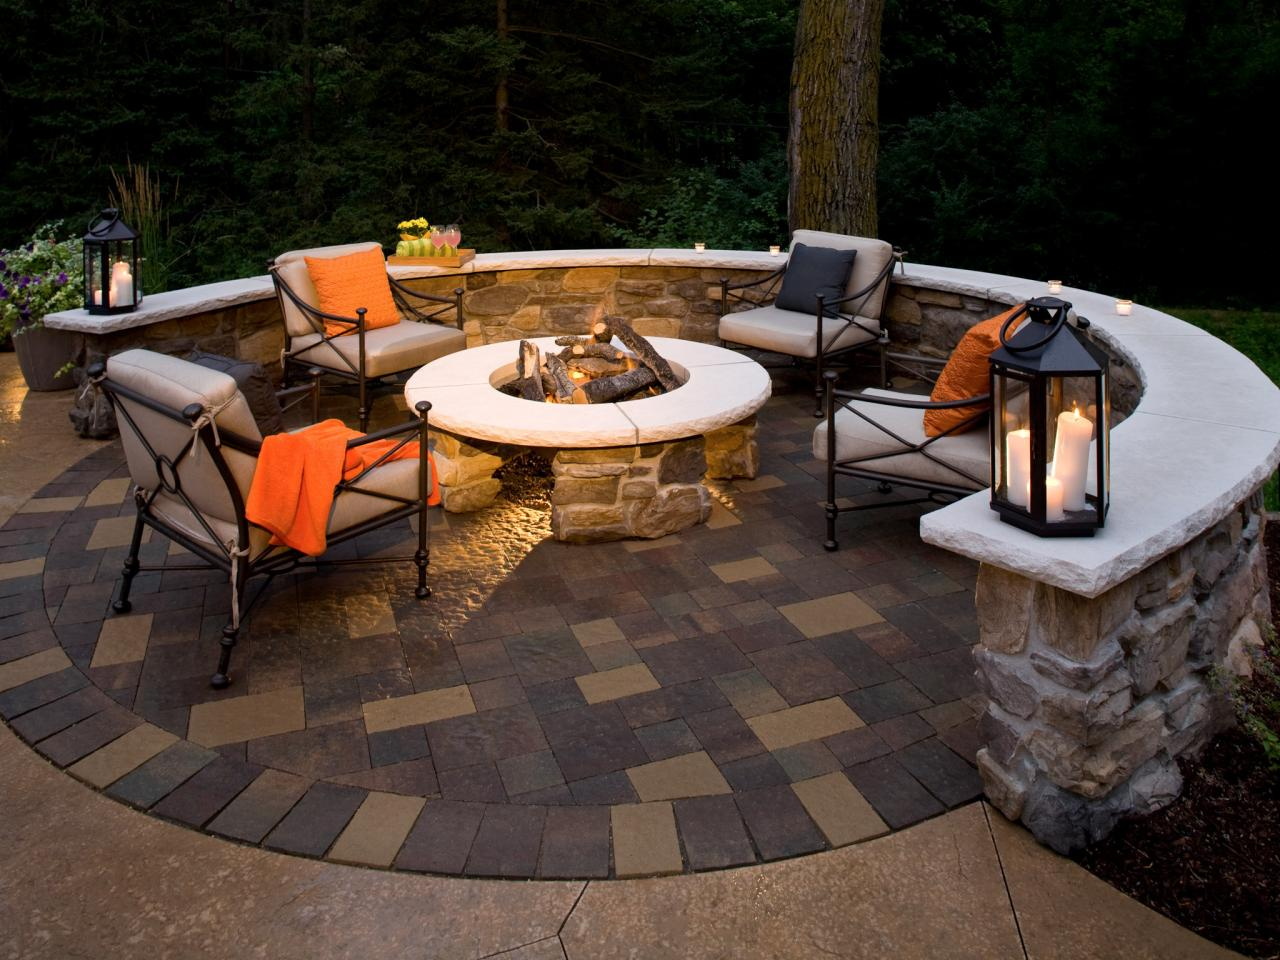 Fire Pit And Paver Patio On The Edge Of Woods